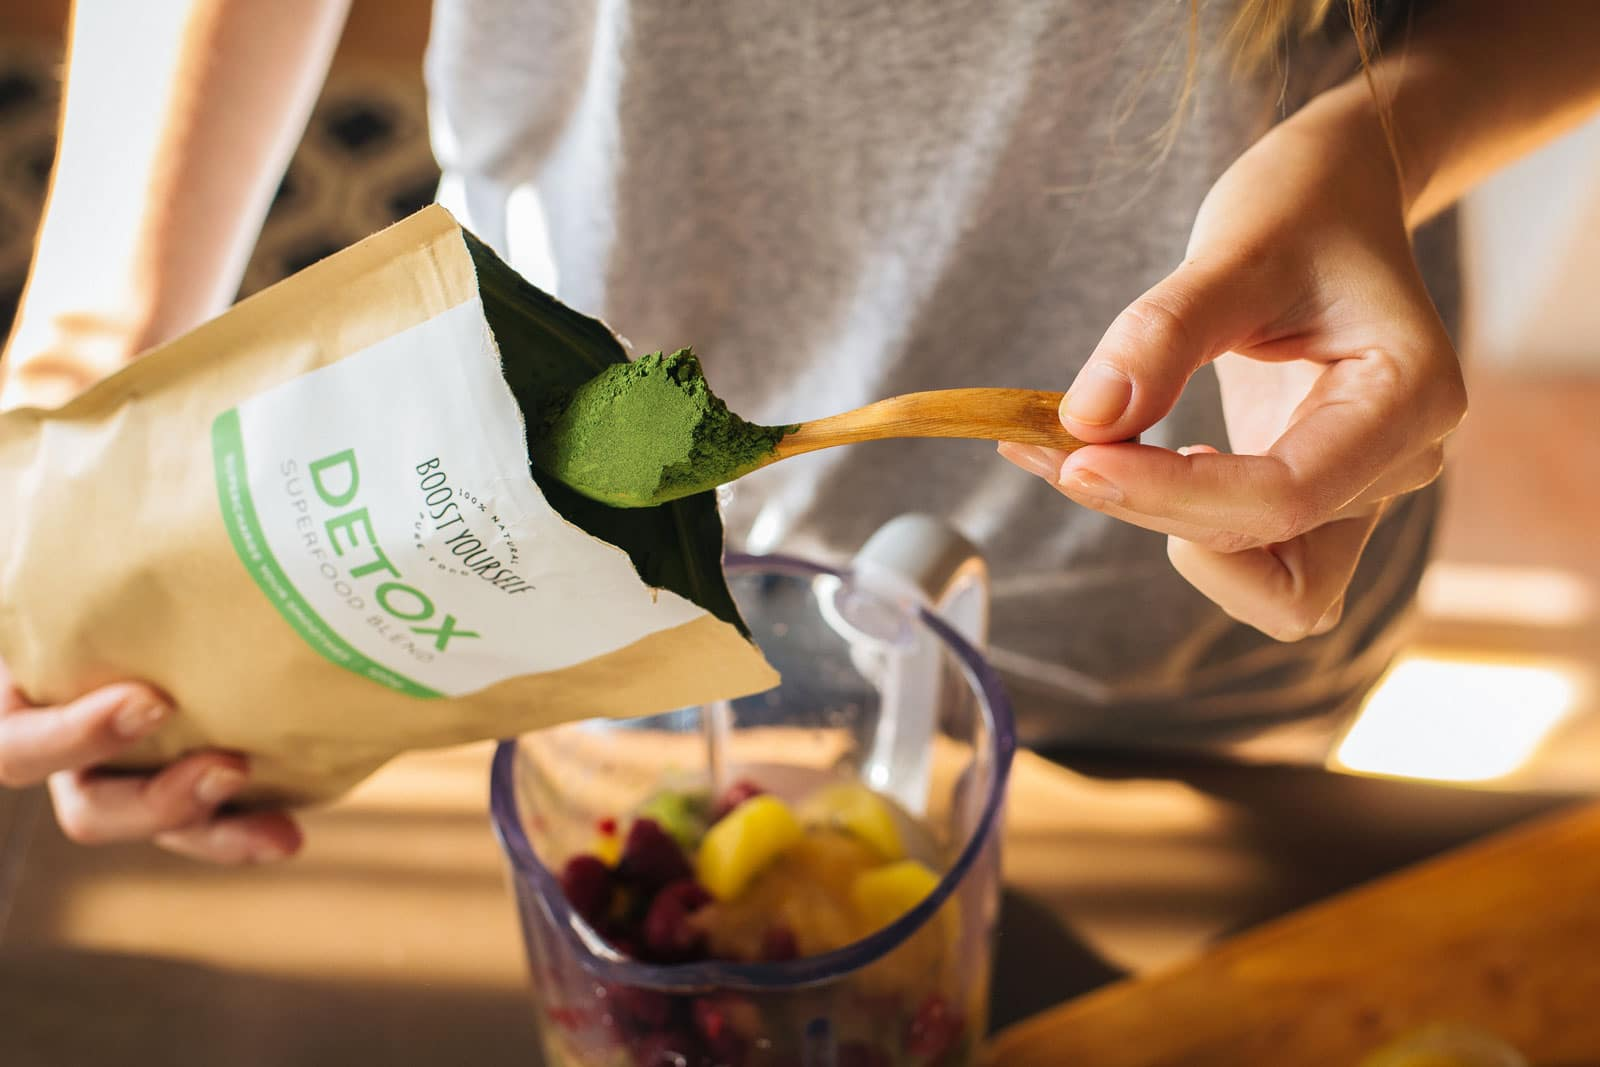 Boost Yourself Detox superfood blend for green smoothies